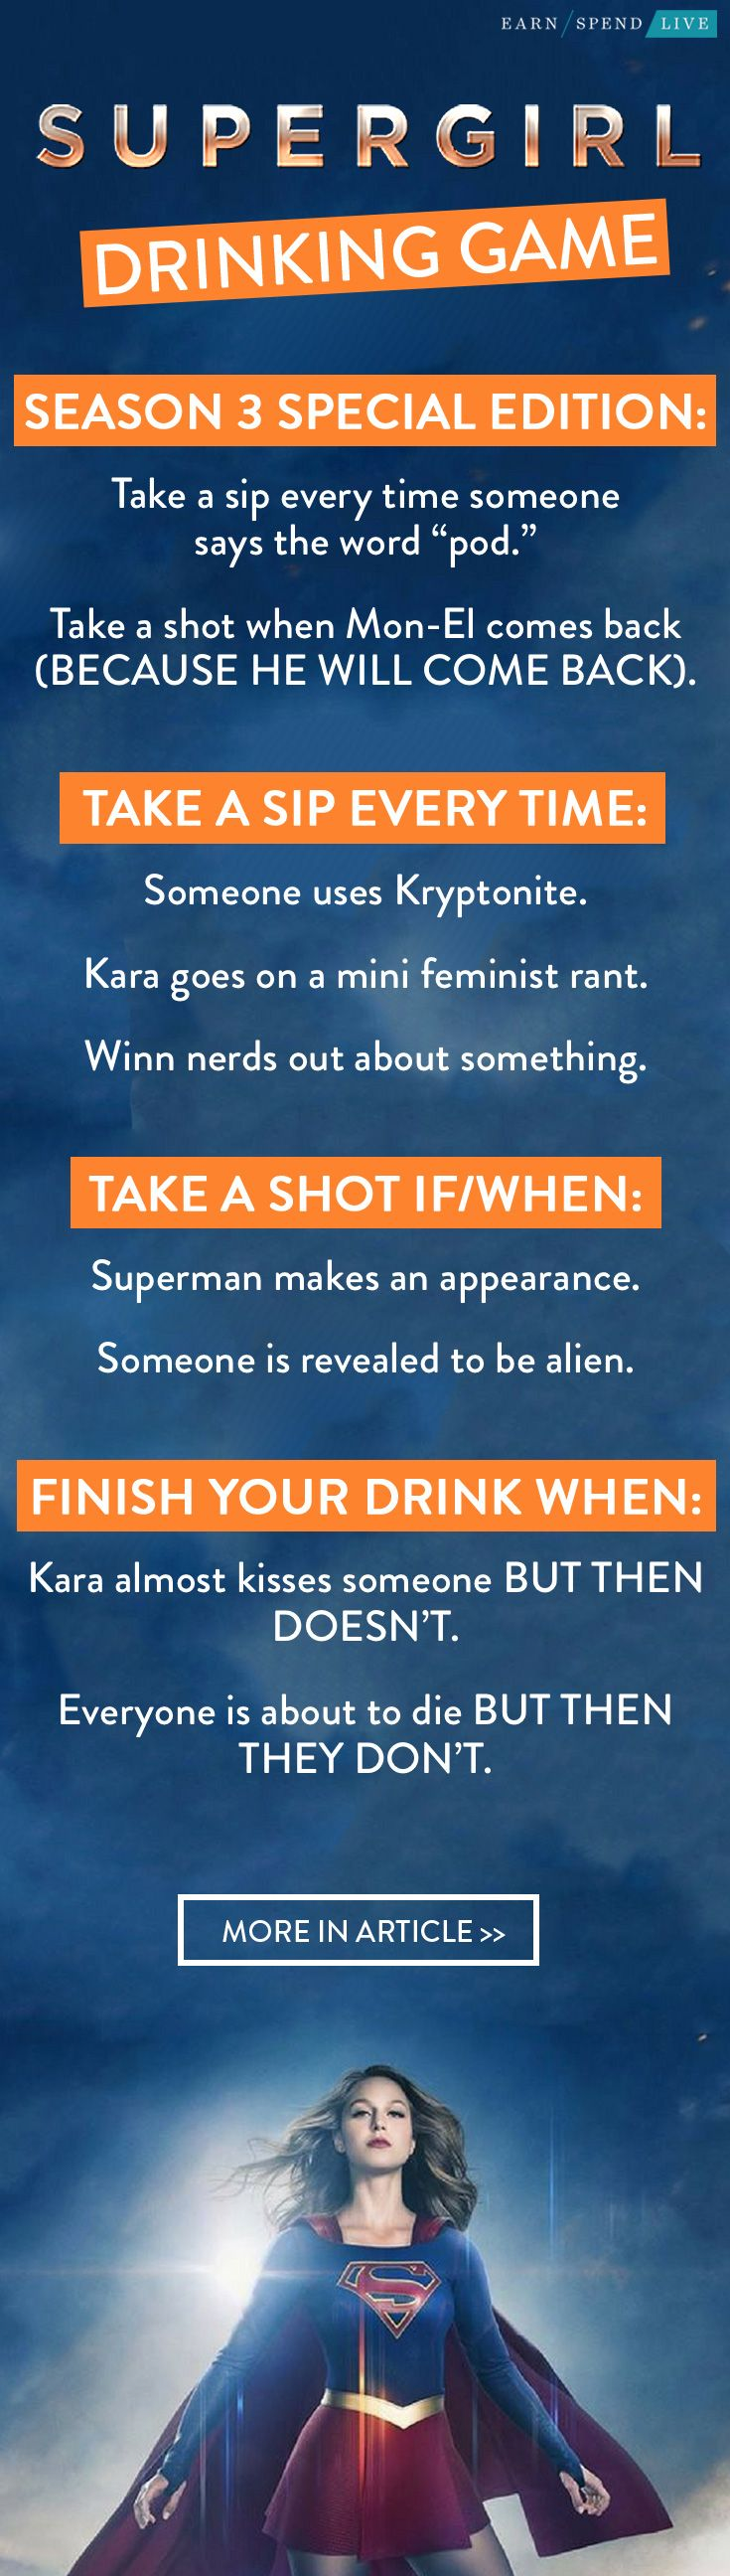 29 best Drinking Games images on Pinterest   Drinking games, Career ...